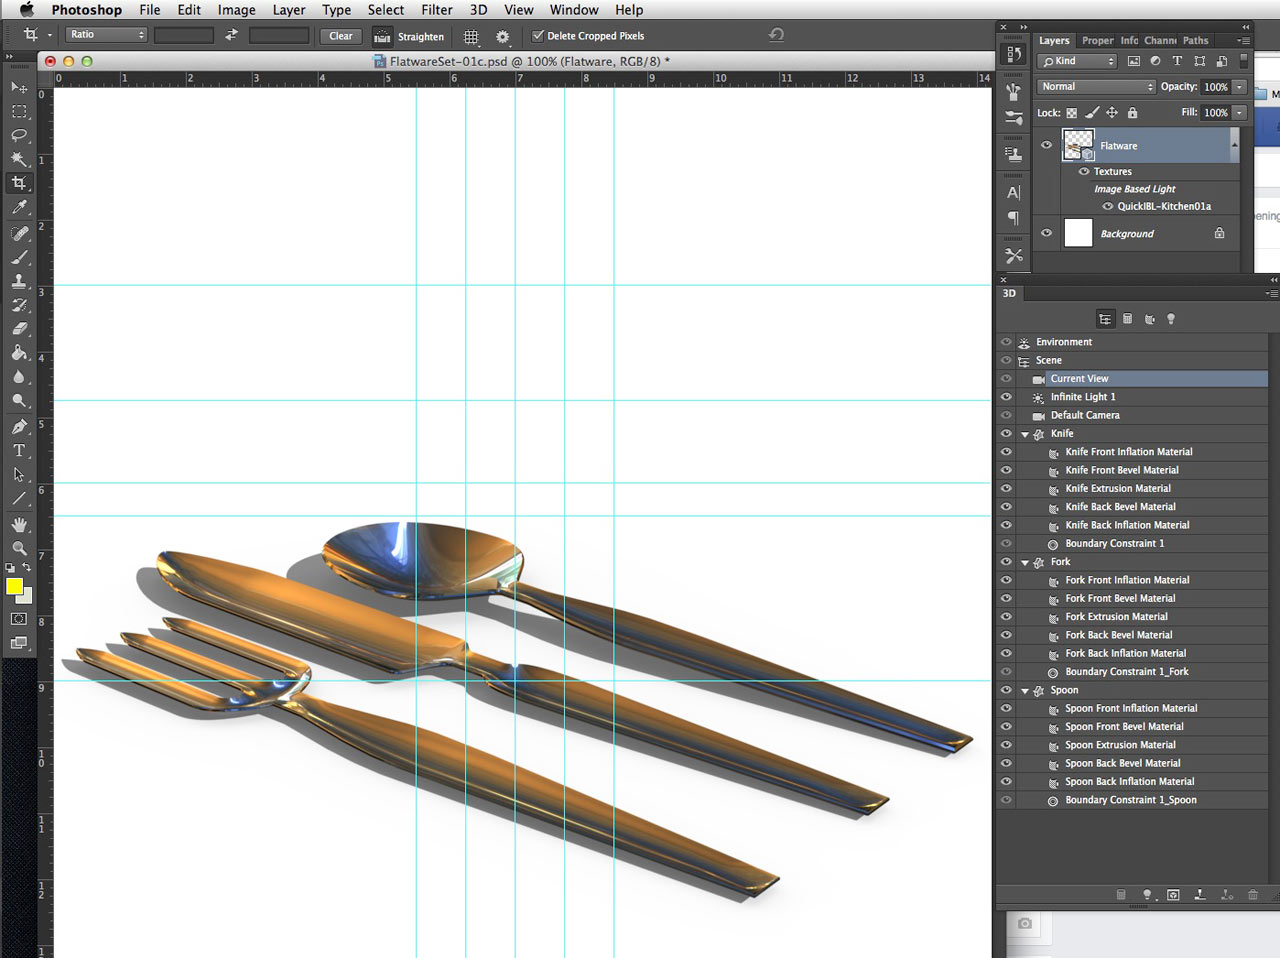 Tips & Tricks for 3D Printing in Photoshop CC